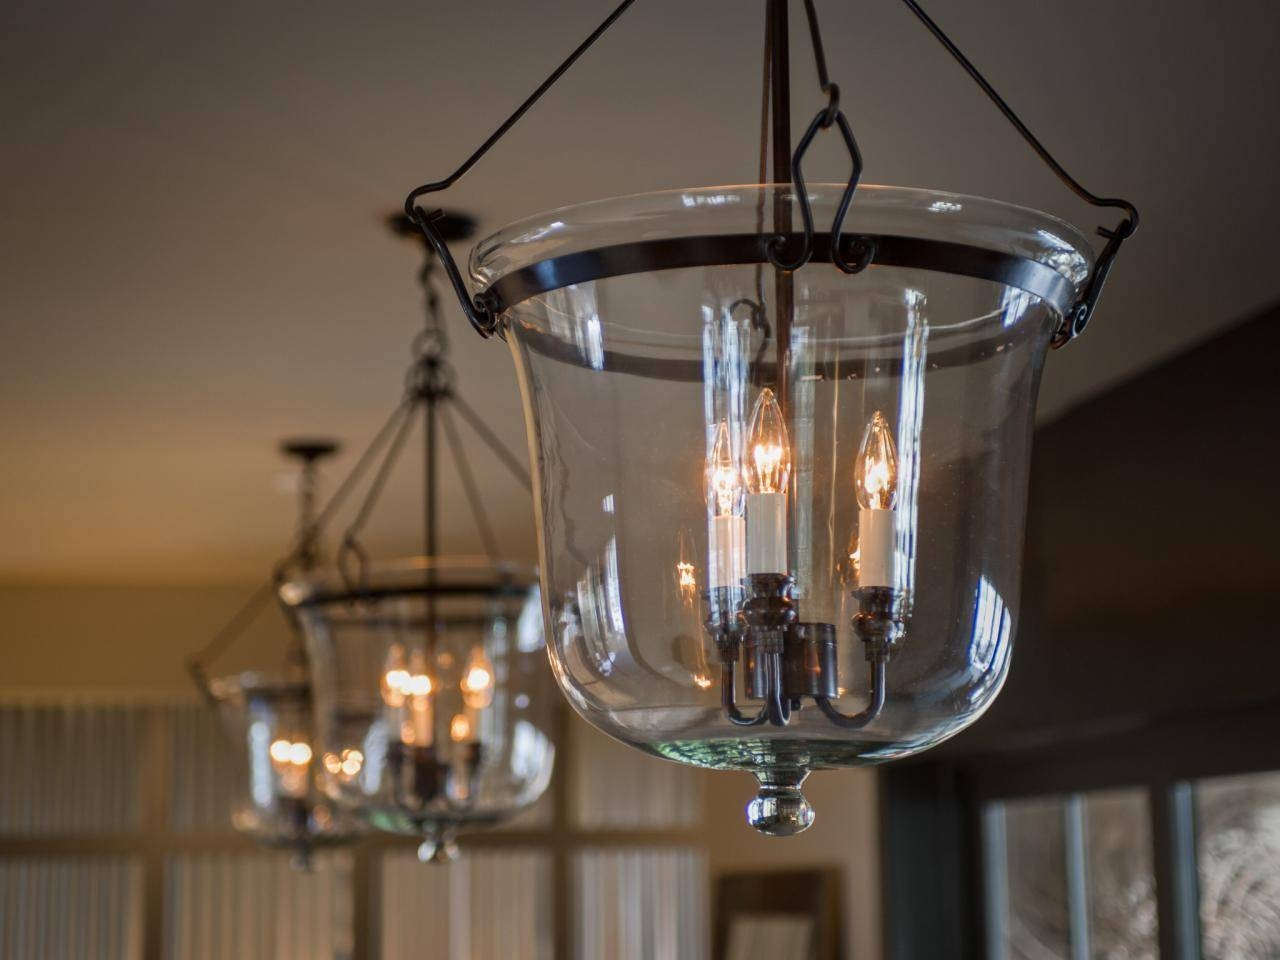 Lighting: 6 Light Brown Entryway Chandelier For Home Lighting Idea In Carriage Pendant Lights (View 6 of 15)